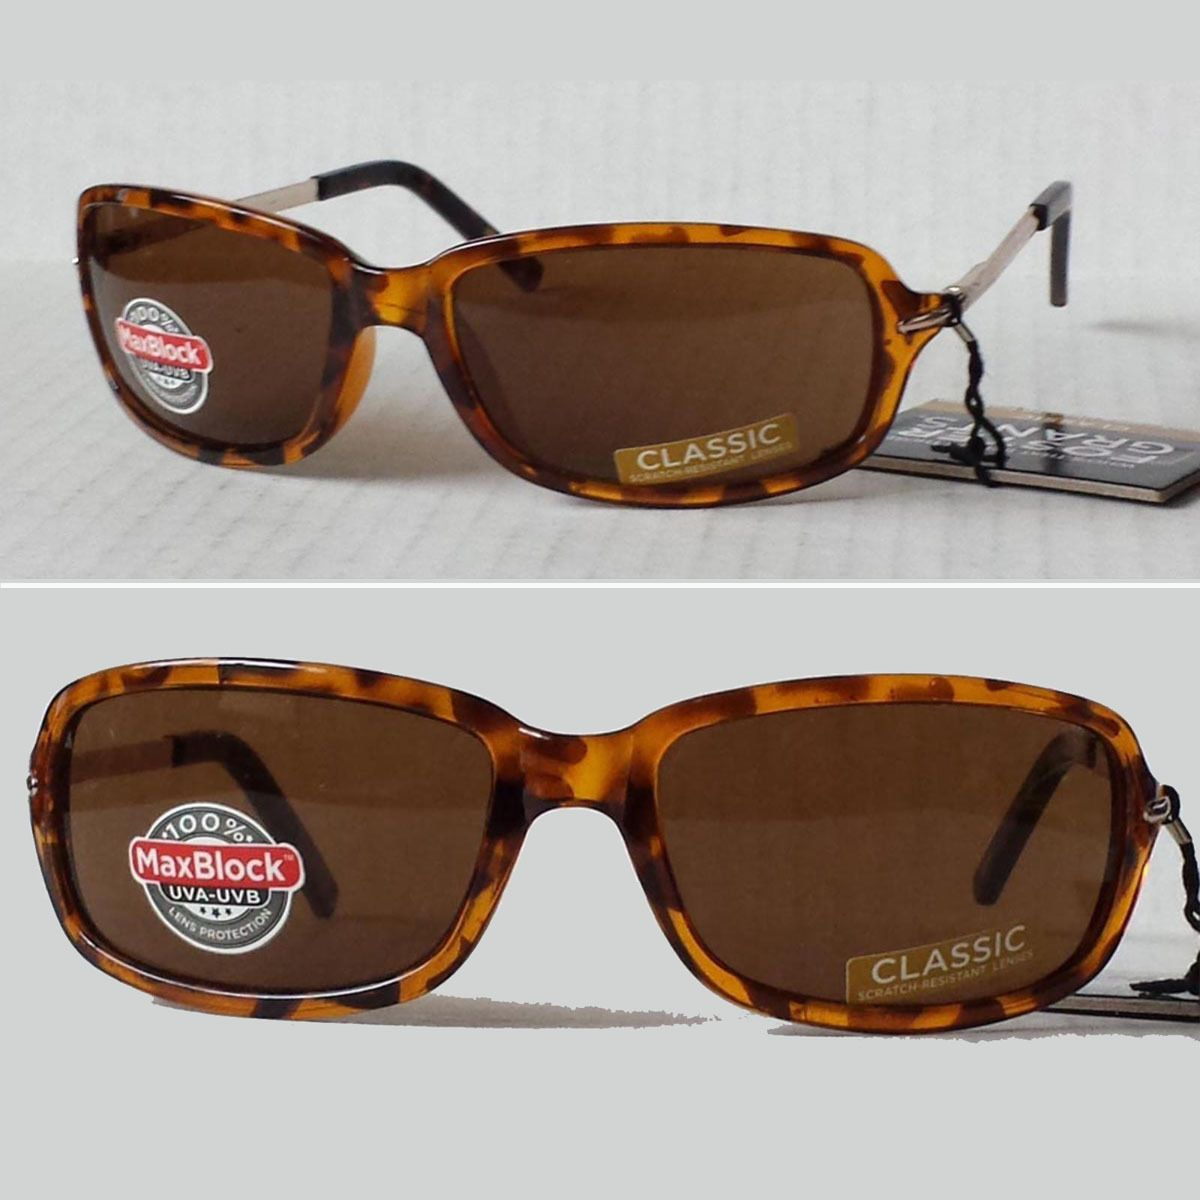 8c6730b7f7ddd Foster Grant  women sunglasses brown rectangular IMPRESSION with metal side  bars visit our ebay store